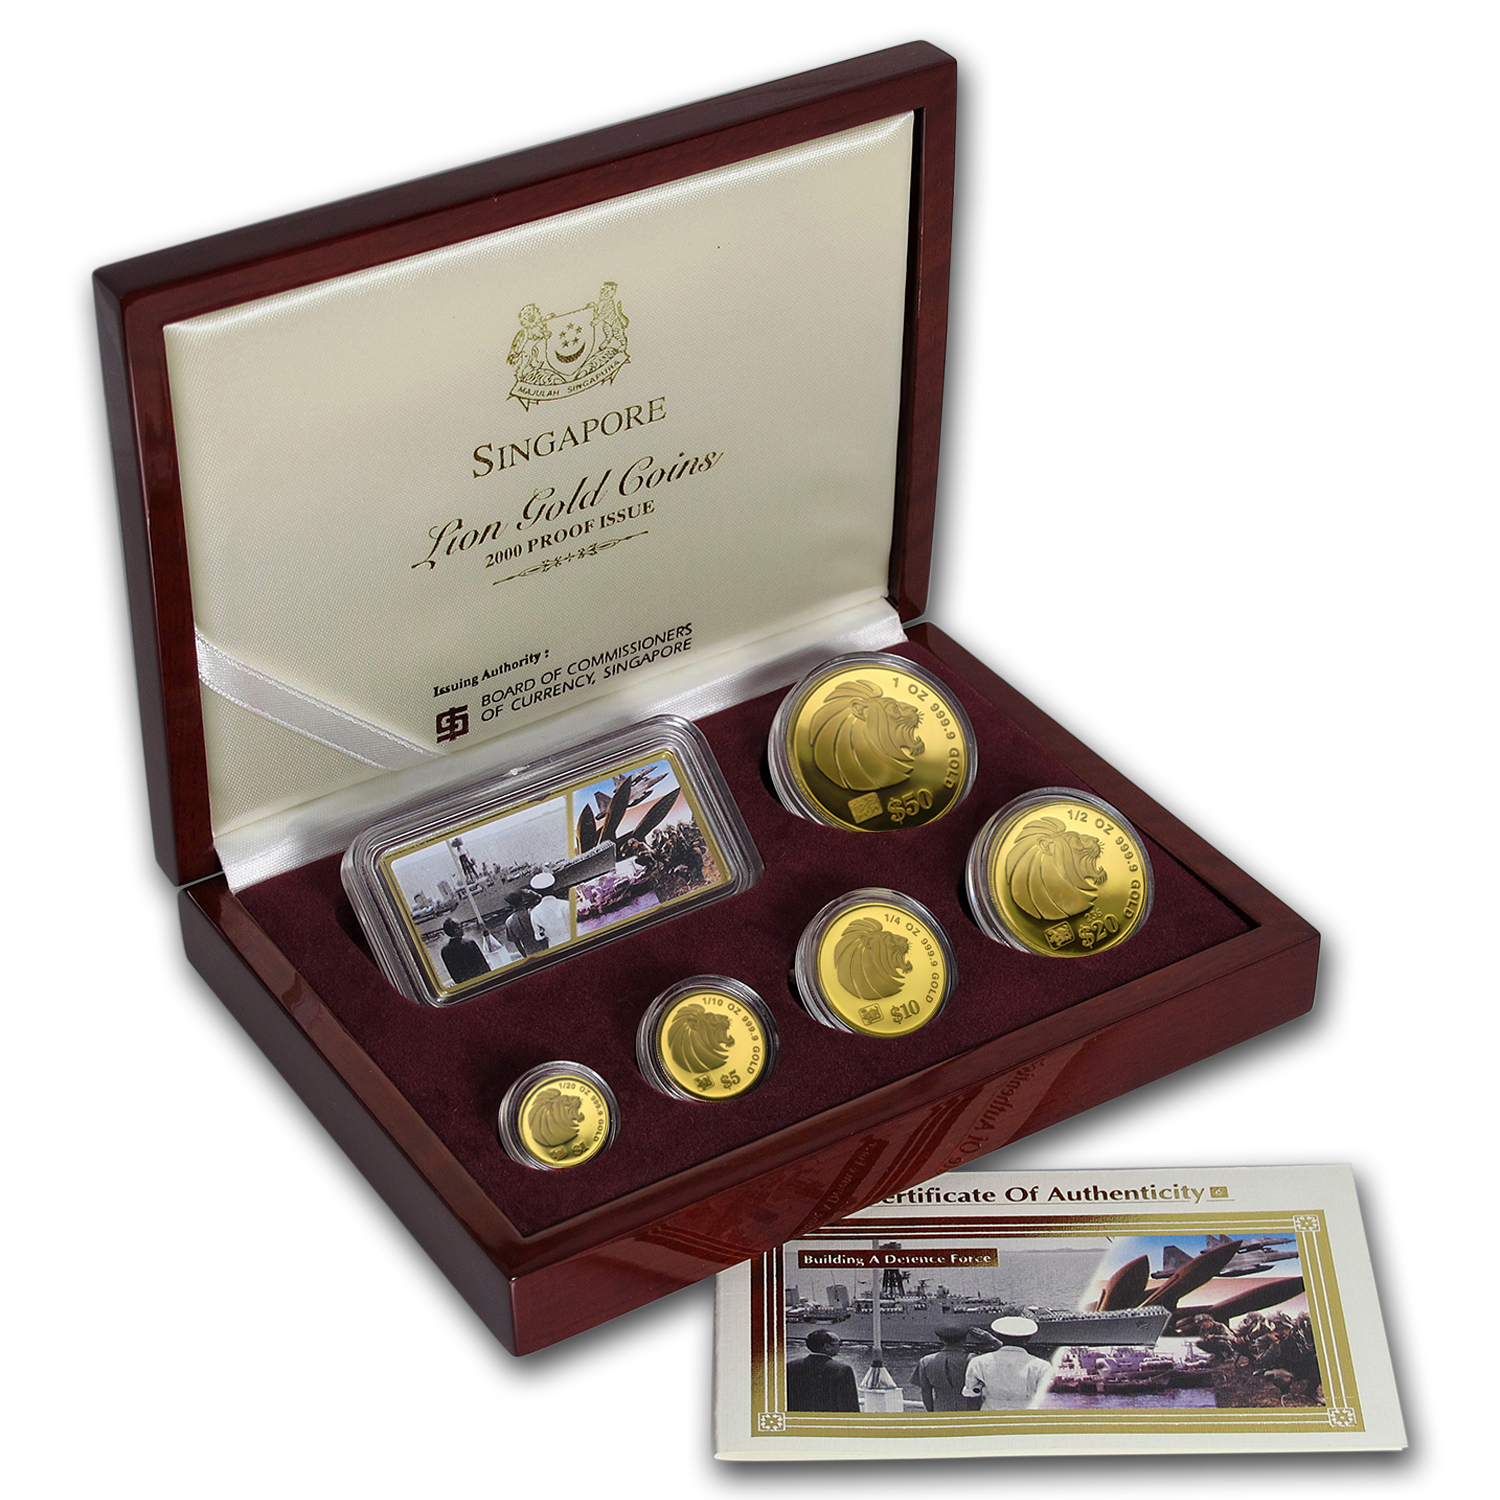 2000 Singapore 5-Coin Gold Lion Proof Set